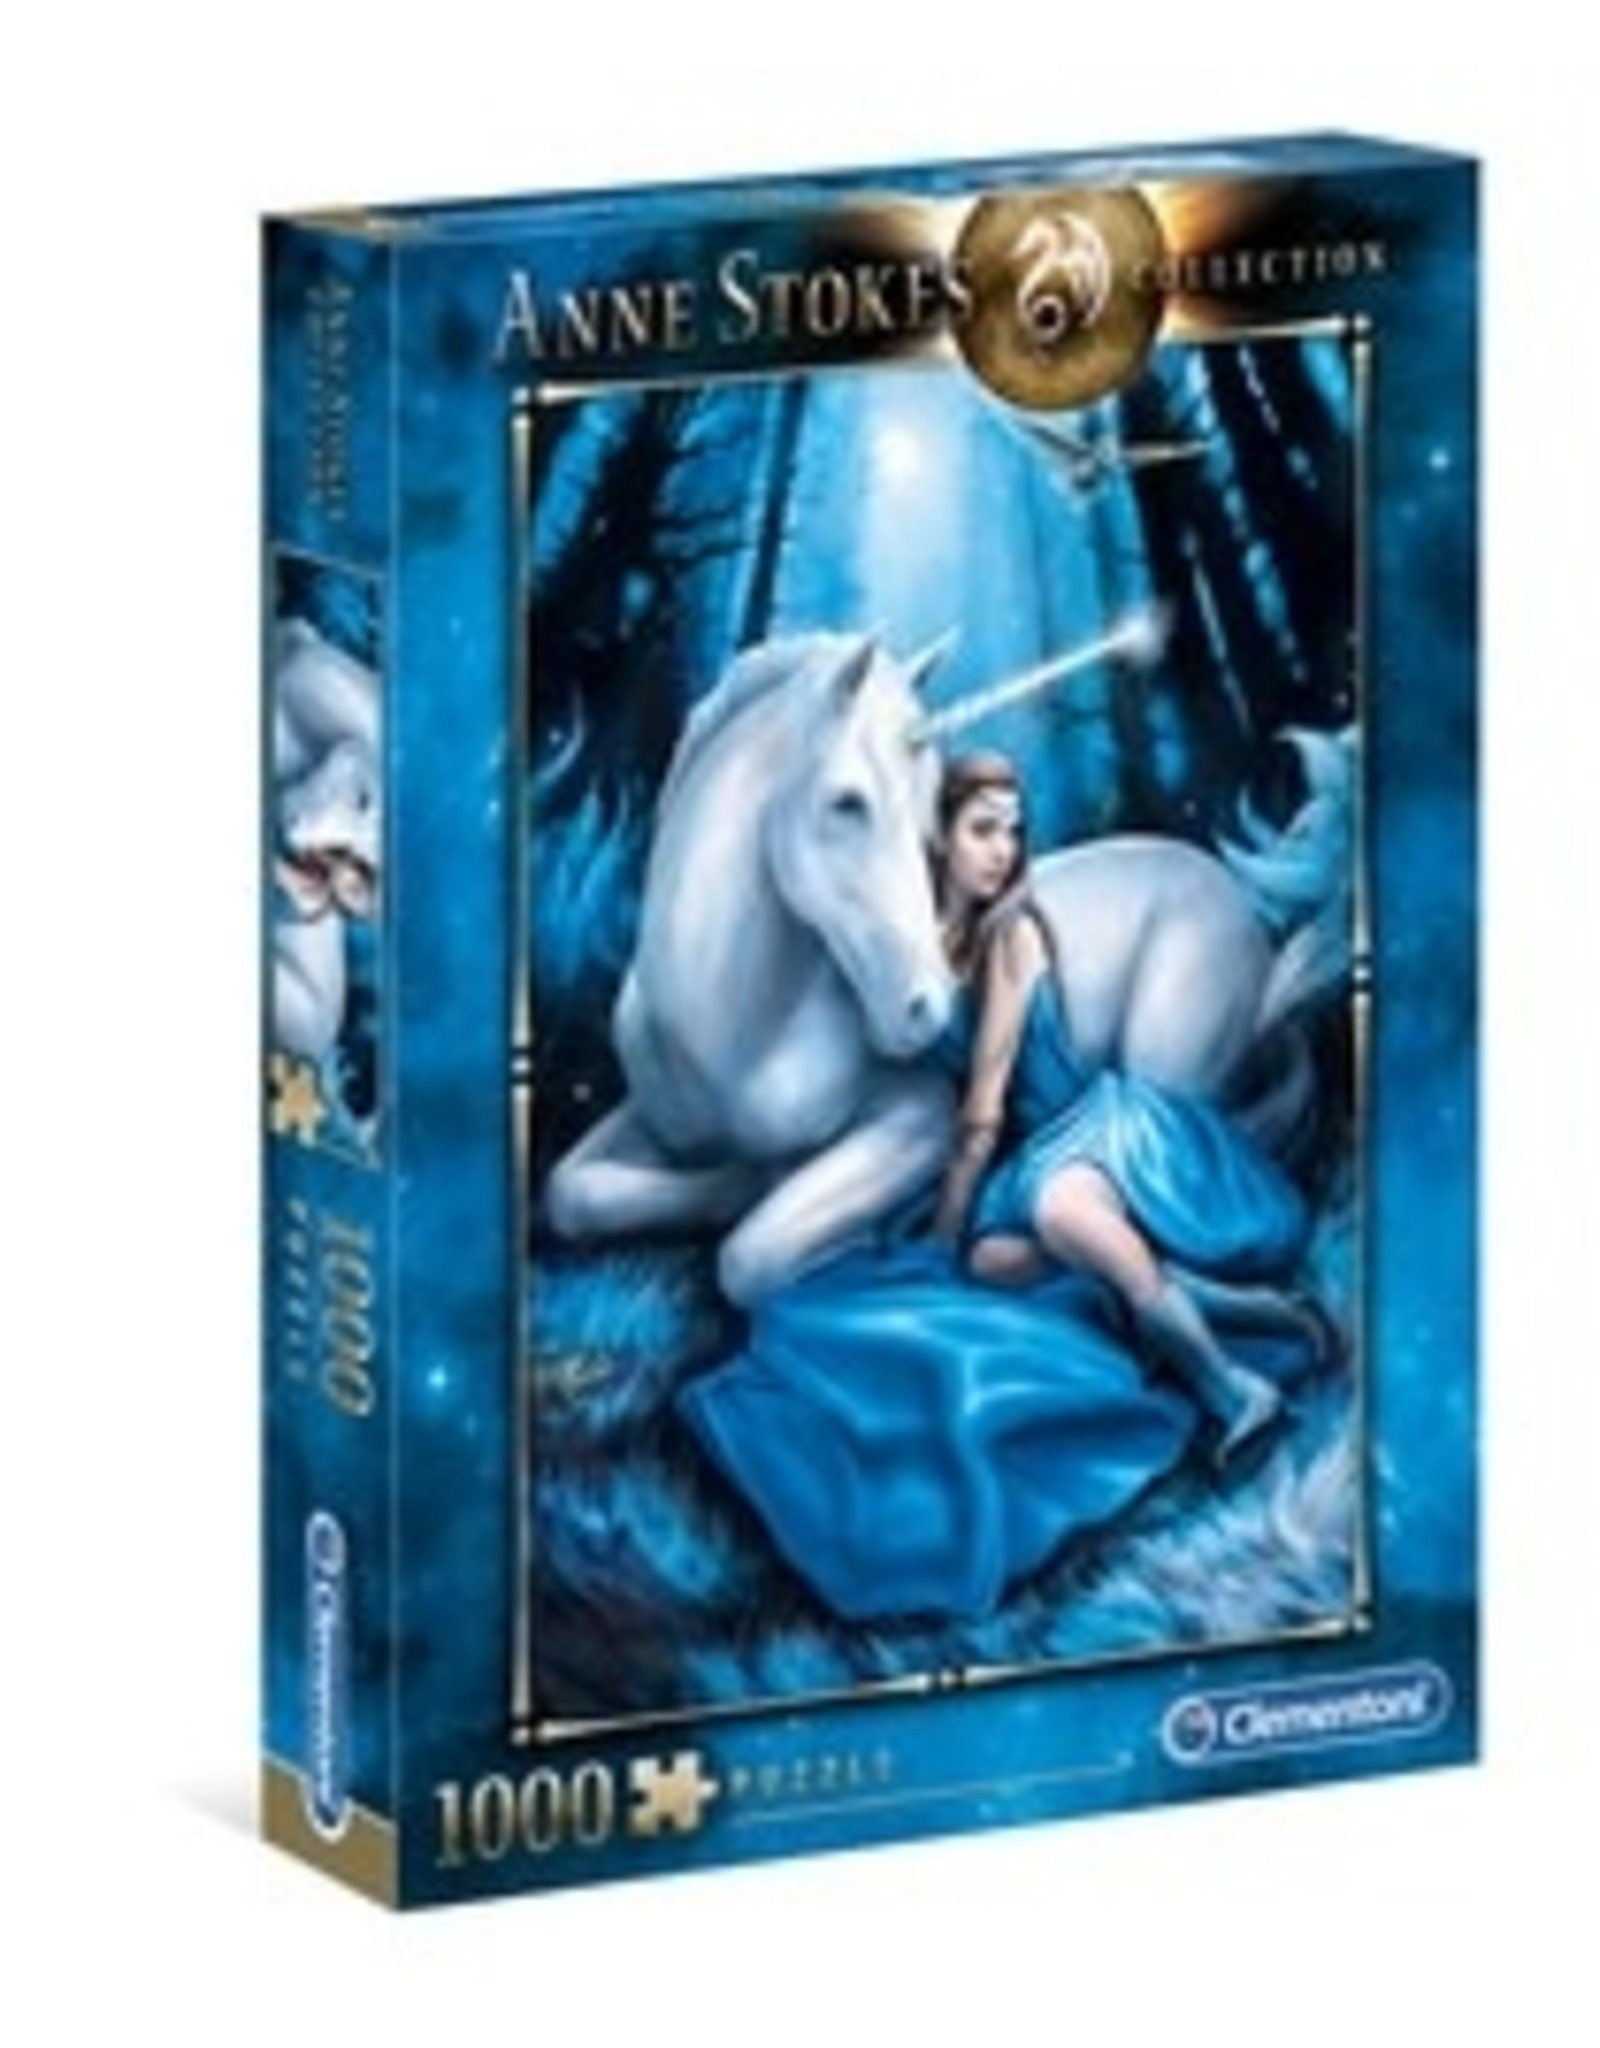 Clementoni Puzzles Anne Stokes - Blue Moon, 1000 pc puzzle - NEW